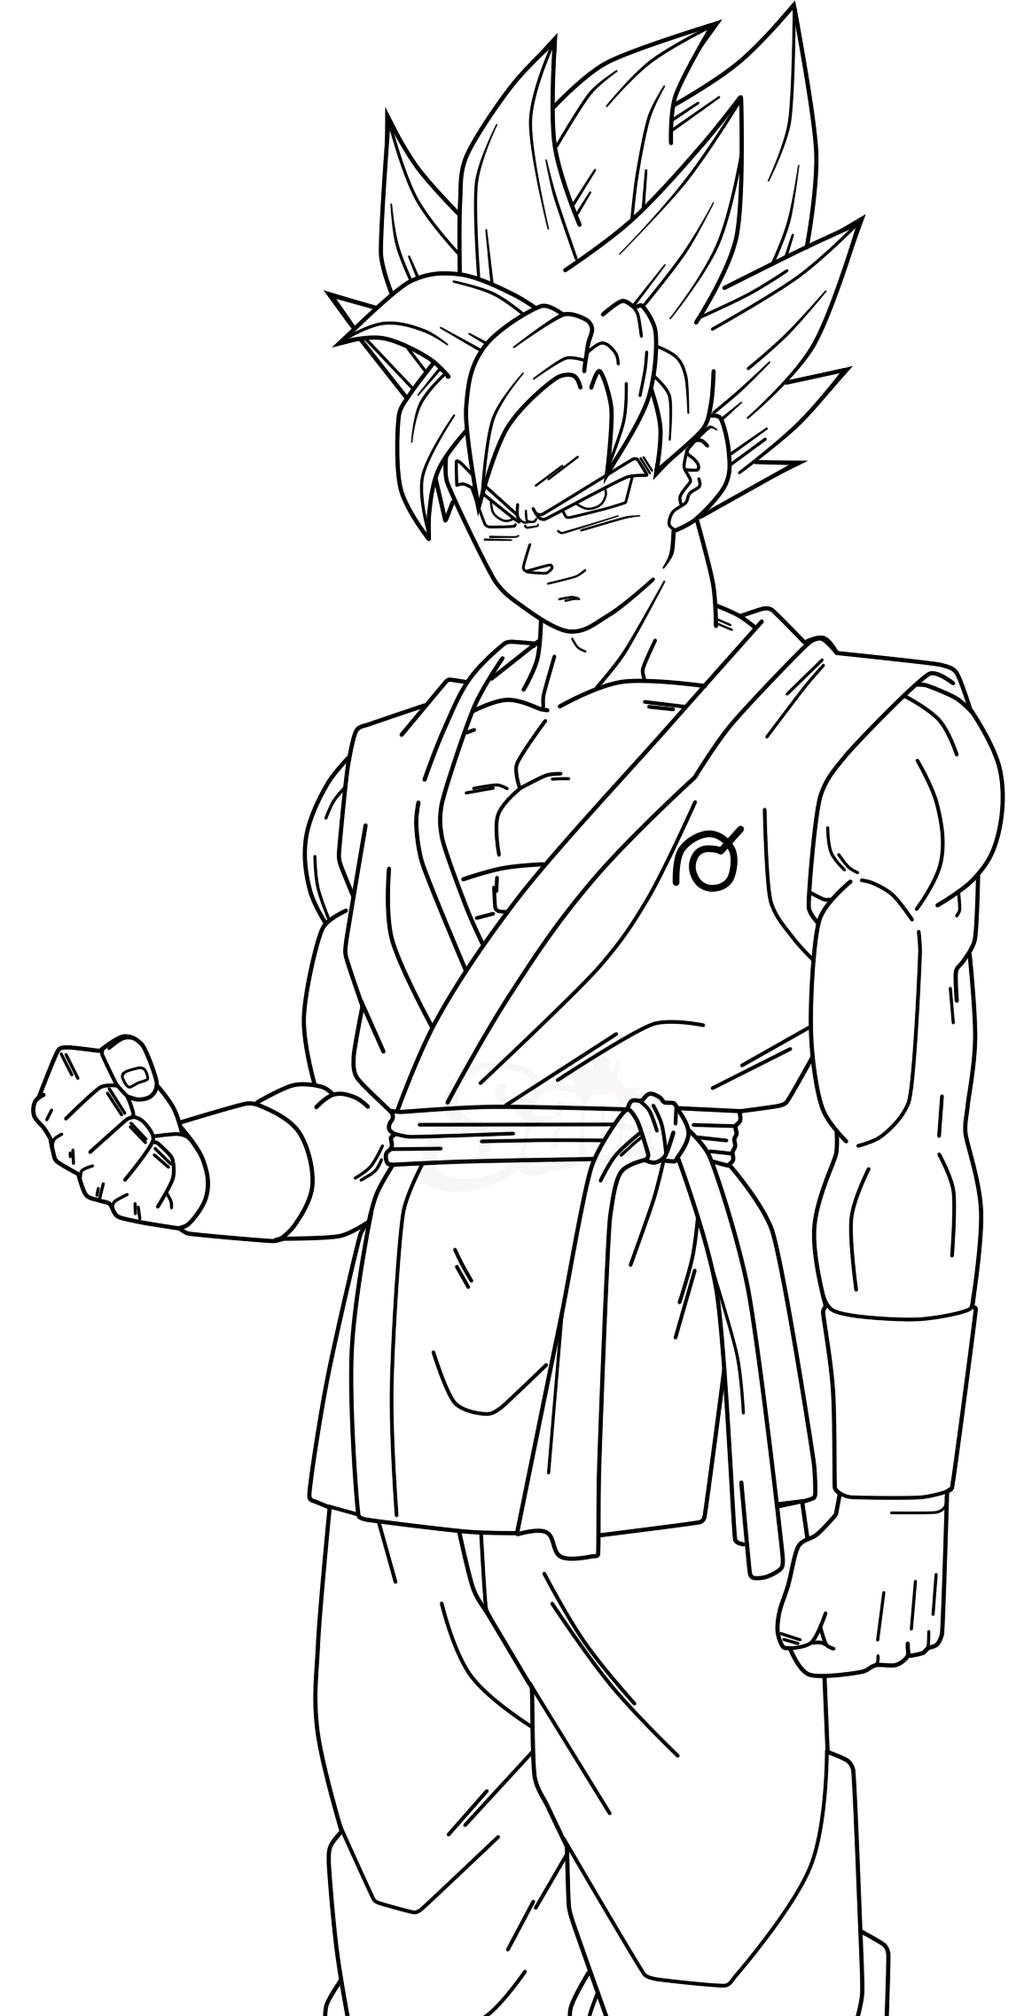 Goku Ssj Blue Lineart 2 By Saodvd On Deviantart Dragon Ball Artwork Dragon Ball Super Art Super Coloring Pages